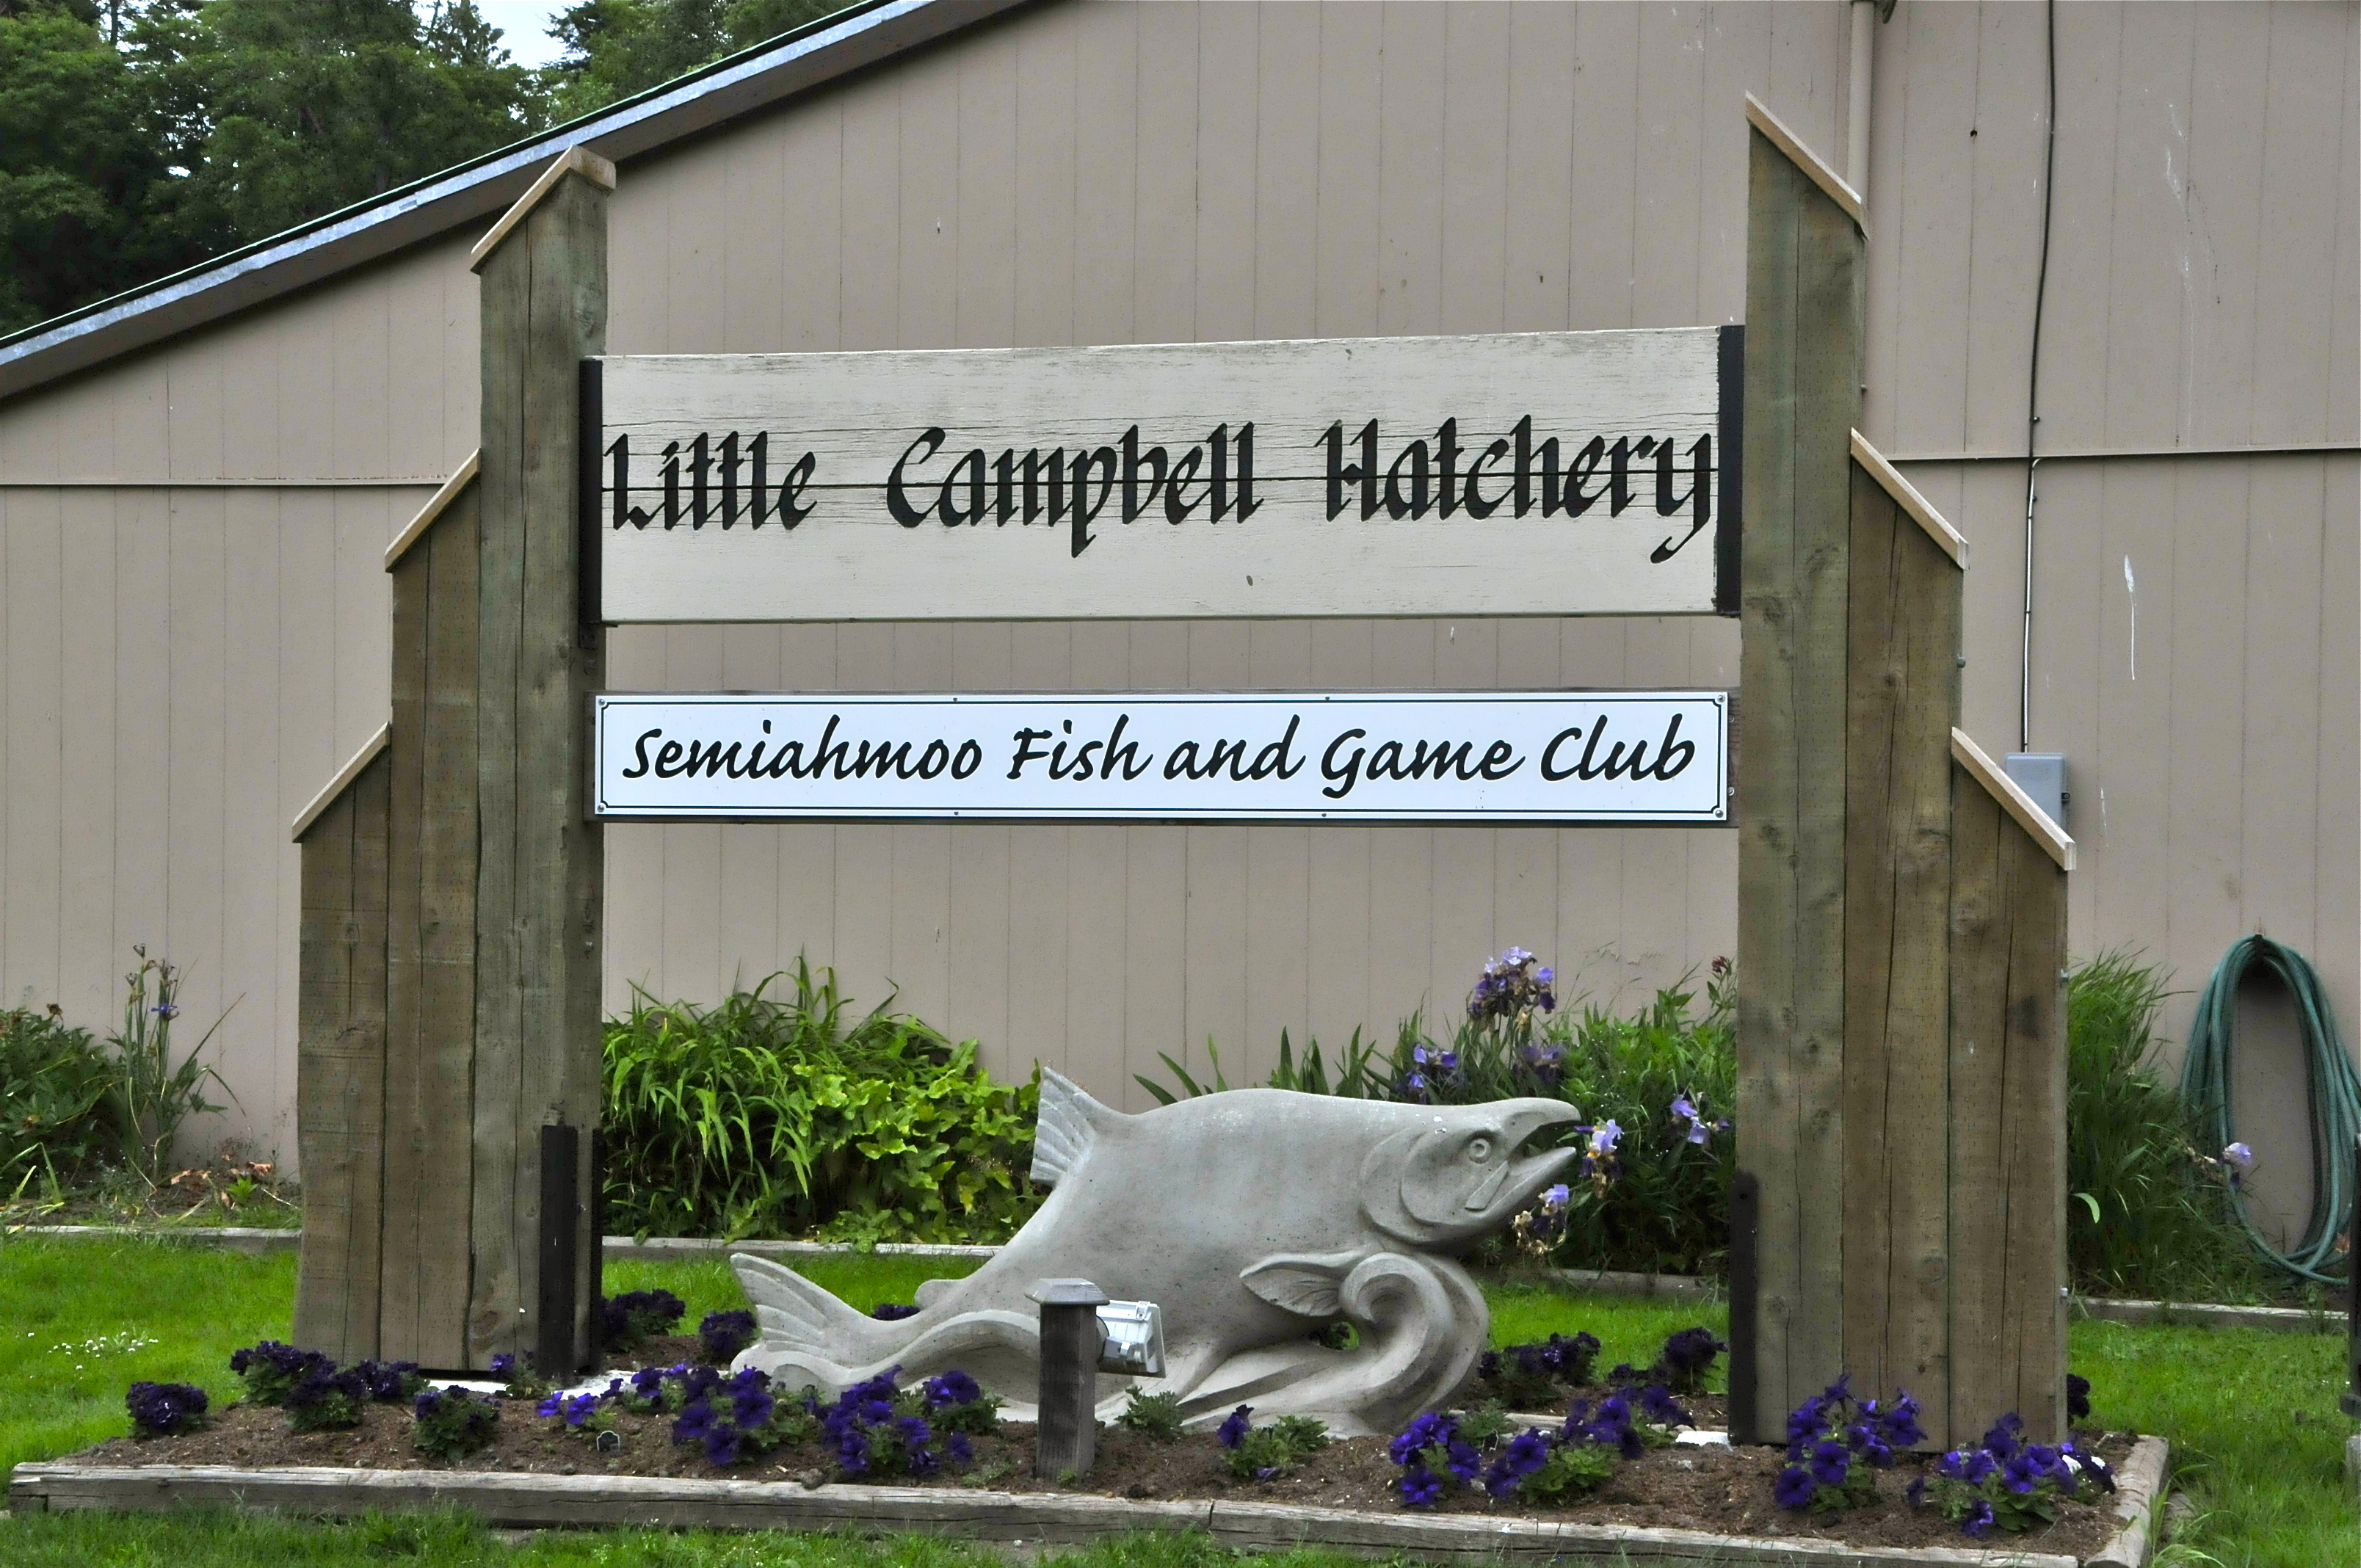 DNCB Report No 2014 22 To Semiahmoo Fish Game Club Little